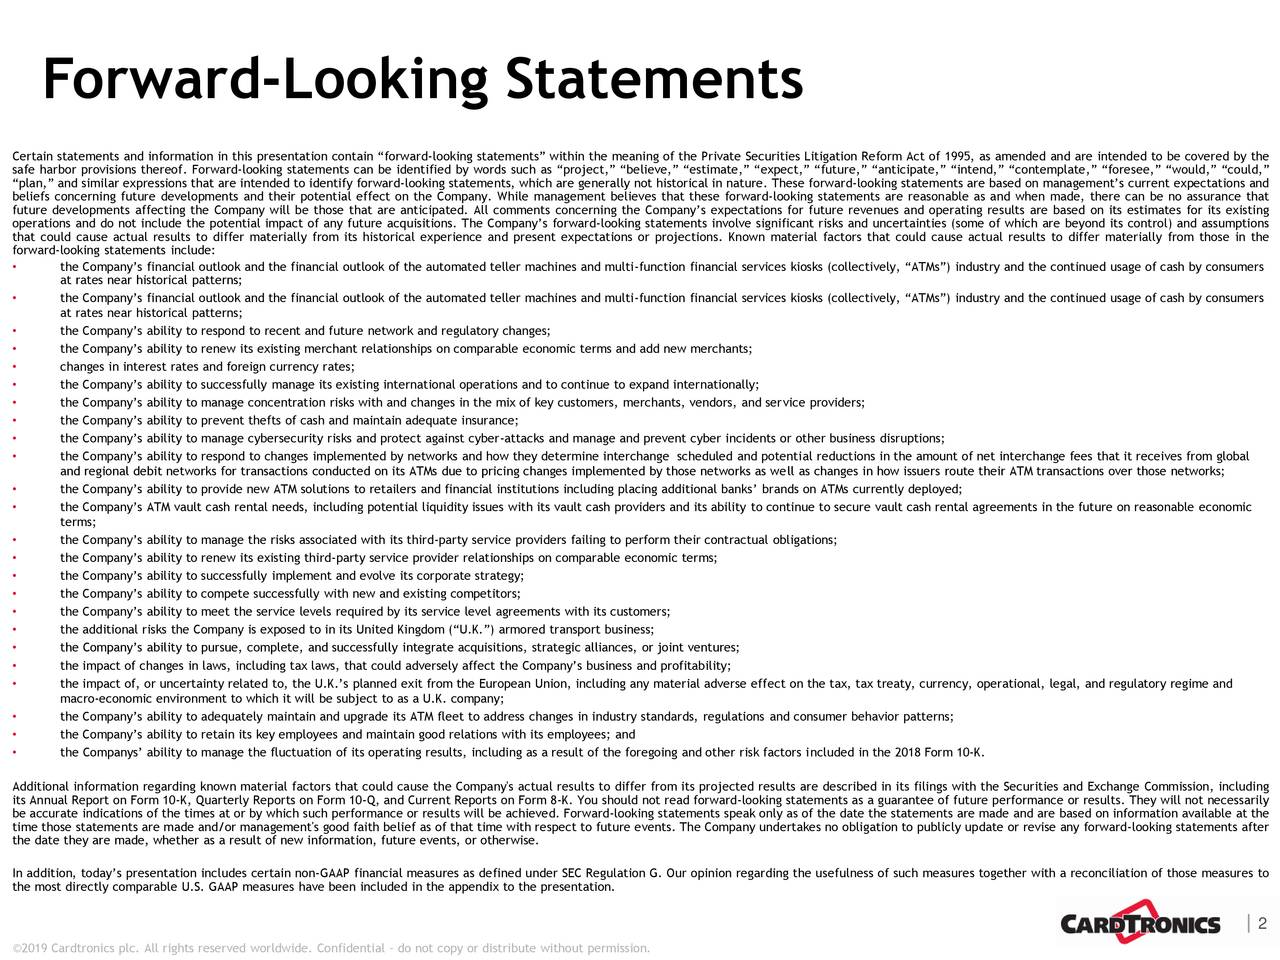 "Certain statements and information in this presentation contain ""forward-looking statements"" within the meaning of the Private Securities Litigation Reform Act of 1995, as amended and are intended to be covered by the safe harbor provisions thereof. Forward-looking statements can be identified by words such as ""project,"" ""believe,"" ""estimate,"" ""expect,"" ""future,"" ""anticipate,"" ""intend,"" ""contemplate,"" ""foresee,"" ""would,"" ""could,"" ""plan,"" and similar expressions that are intended to identify forward-looking statements, which are generally not historical in nature. These forward-looking statements are based on management's current expectations and beliefs concerning future developments and their potential effect on the Company. While management believes that these forward-looking statements are reasonable as and when made, there can be no assurance that future developments affecting the Company will be those that are anticipated. All comments concerning the Company's expectations for future revenues and operating results are based on its estimates for its existing operations and do not include the potential impact of any future acquisitions. The Company's forward-looking statements involve significant risks and uncertainties (some of which are beyond its control) and assumptions that could cause actual results to differ materially from its historical experience and present expectations or projections. Known material factors that could cause actual results to differ materially from those in the forward-looking statements include: • the Company's financial outlook and the financial outlook of the automated teller machines and multi-function financial services kiosks (collectively, ""ATMs"") industry and the continued usage of cash by consumers at rates near historical patterns; • the Company's financial outlook and the financial outlook of the automated teller machines and multi-function financial services kiosks (collectively, ""ATMs"") industry and the continued usage of cash by consumers at rates near historical patterns; • the Company's ability to respond to recent and future network and regulatory changes; • the Company's ability to renew its existing merchant relationships on comparable economic terms and add new merchants; • changes in interest rates and foreign currency rates; • the Company's ability to successfully manage its existing international operations and to continue to expand internationally; • the Company's ability to manage concentration risks with and changes in the mix of key customers, merchants, vendors, and service providers; • the Company's ability to prevent thefts of cash and maintain adequate insurance; • the Company's ability to manage cybersecurity risks and protect against cyber-attacks and manage and prevent cyber incidents or other business disruptions; • the Company's ability to respond to changes implemented by networks and how they determine interchange scheduled and potential reductions in the amount of net interchange fees that it receives from global and regional debit networks for transactions conducted on its ATMs due to pricing changes implemented by those networks as well as changes in how issuers route their ATM transactions over those networks; • the Company's ability to provide new ATM solutions to retailers and financial institutions including placing additional banks' brands on ATMs currently deployed; • the Company's ATM vault cash rental needs, including potential liquidity issues with its vault cash providers and its ability to continue to secure vault cash rental agreements in the future on reasonable economic terms; • the Company's ability to manage the risks associated with its third-party service providers failing to perform their contractual obligations; • the Company's ability to renew its existing third-party service provider relationships on comparable economic terms; • the Company's ability to successfully implement and evolve its corporate strategy; • the Company's ability to compete successfully with new and existing competitors; • the Company's ability to meet the service levels required by its service level agreements with its customers; • the additional risks the Company is exposed to in its United Kingdom (""U.K."") armored transport business; • the Company's ability to pursue, complete, and successfully integrate acquisitions, strategic alliances, or joint ventures; • the impact of changes in laws, including tax laws, that could adversely affect the Company's business and profitability; • the impact of, or uncertainty related to, the U.K.'s planned exit from the European Union, including any material adverse effect on the tax, tax treaty, currency, operational, legal, and regulatory regime and macro-economic environment to which it will be subject to as a U.K. company; • the Company's ability to adequately maintain and upgrade its ATM fleet to address changes in industry standards, regulations and consumer behavior patterns; • the Company's ability to retain its key employees and maintain good relations with its employees; and • the Companys' ability to manage the fluctuation of its operating results, including as a result of the foregoing and other risk factors included in the 2018 Form 10-K. Additional information regarding known material factors that could cause the Company's actual results to differ from its projected results are described in its filings with the Securities and Exchange Commission, including its Annual Report on Form 10-K, Quarterly Reports on Form 10-Q, and Current Reports on Form 8-K. You should not read forward-looking statements as a guarantee of future performance or results. They will not necessarily be accurate indications of the times at or by which such performance or results will be achieved. Forward-looking statements speak only as of the date the statements are made and are based on information available at the time those statements are made and/or management's good faith belief as of that time with respect to future events. The Company undertakes no obligation to publicly update or revise any forward-looking statements after the date they are made, whether as a result of new information, future events, or otherwise. In addition, today's presentation includes certain non-GAAP financial measures as defined under SEC Regulation G. Our opinion regarding the usefulness of such measures together with a reconciliation of those measures to the most directly comparable U.S. GAAP measures have been included in the appendix to the presentation. 